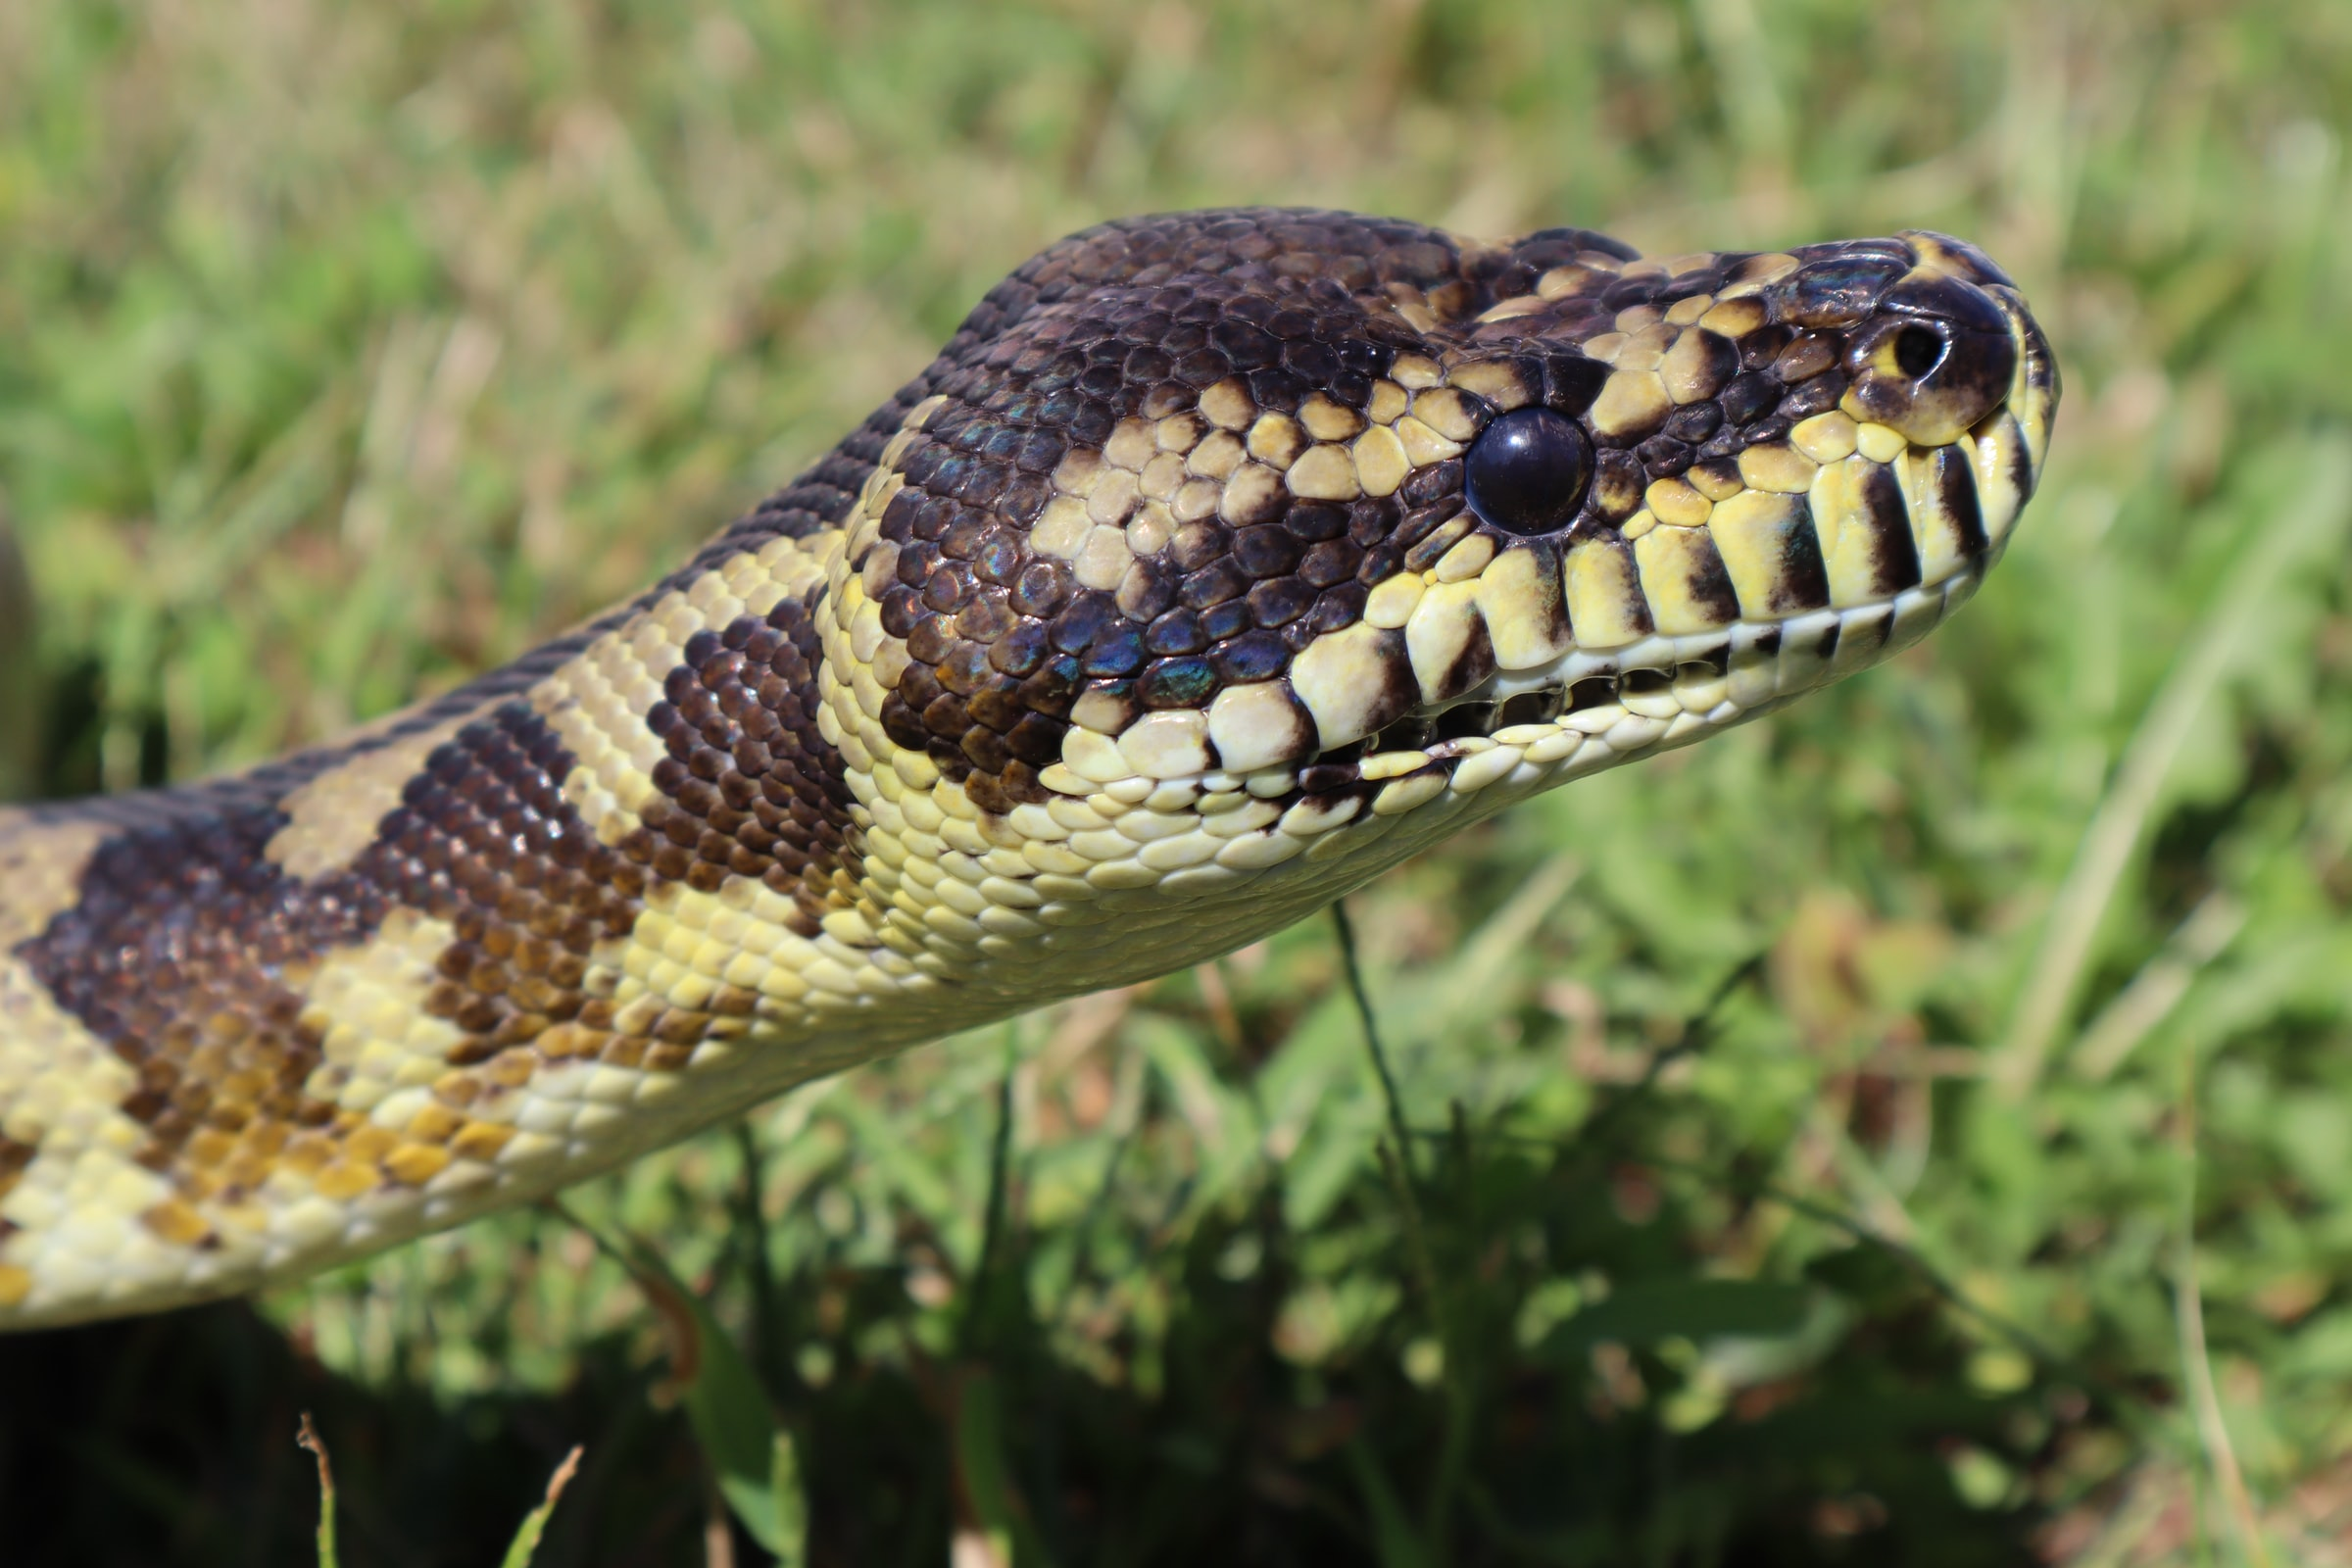 Pythons To Become New Menu Item In Florida